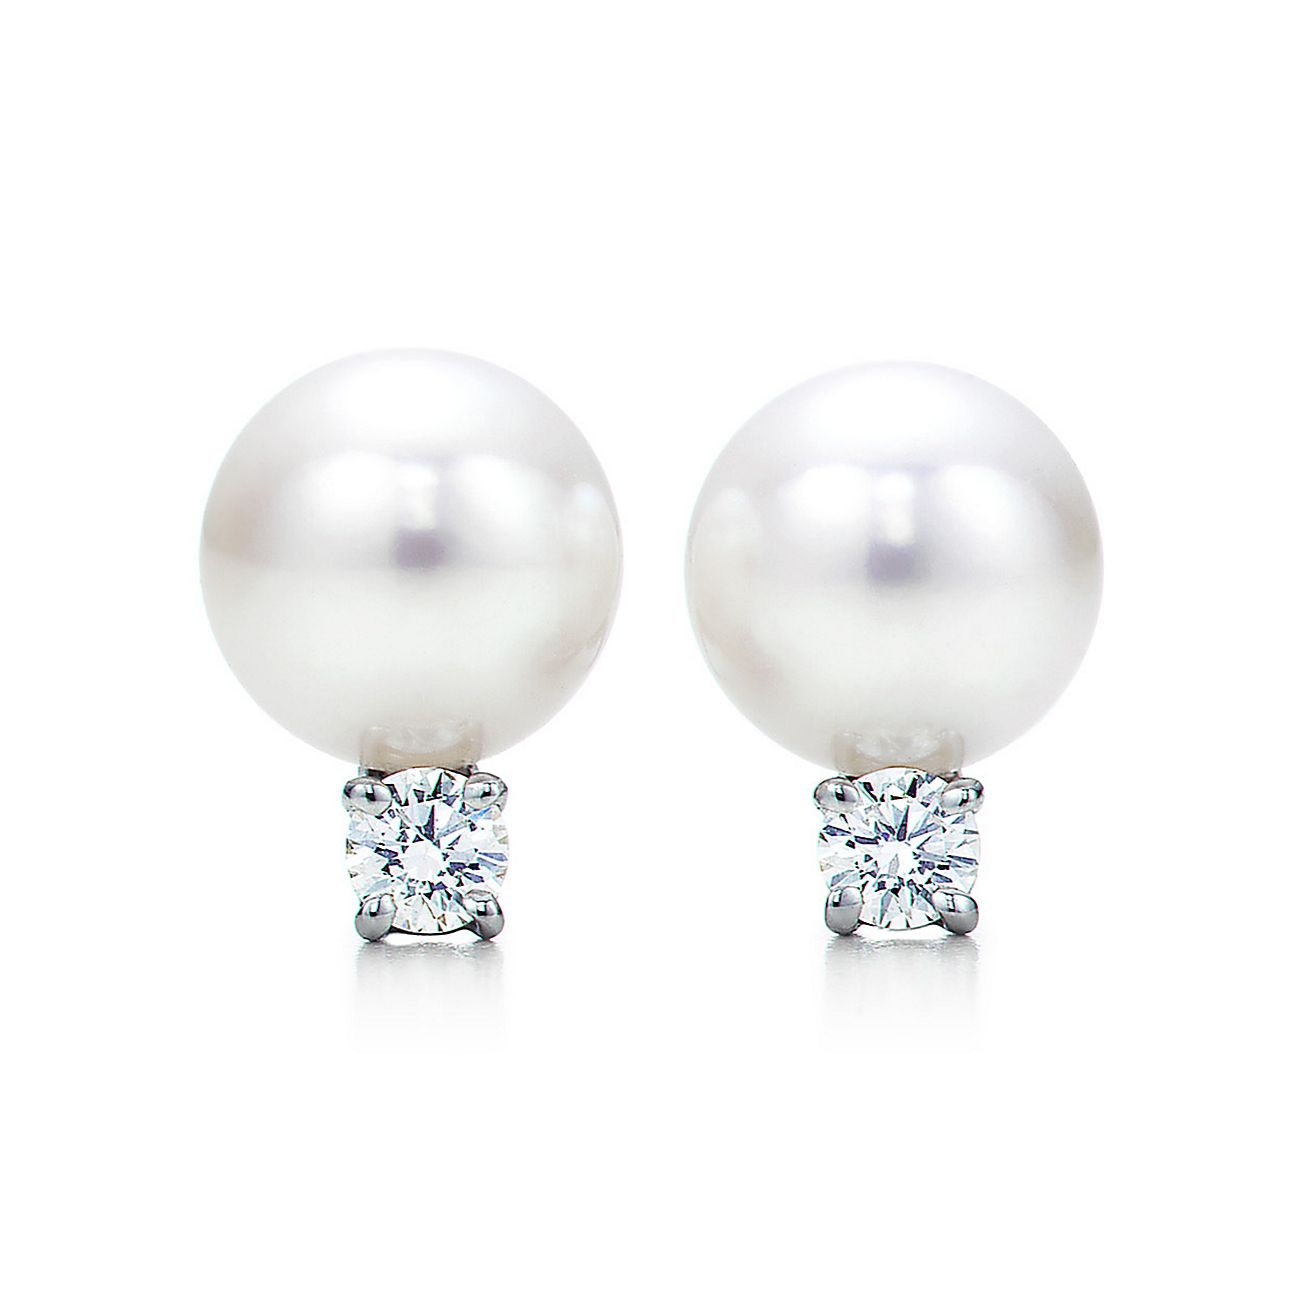 trillion earrings on selin kent products peral white adaearrings diamonds model pearl ada with